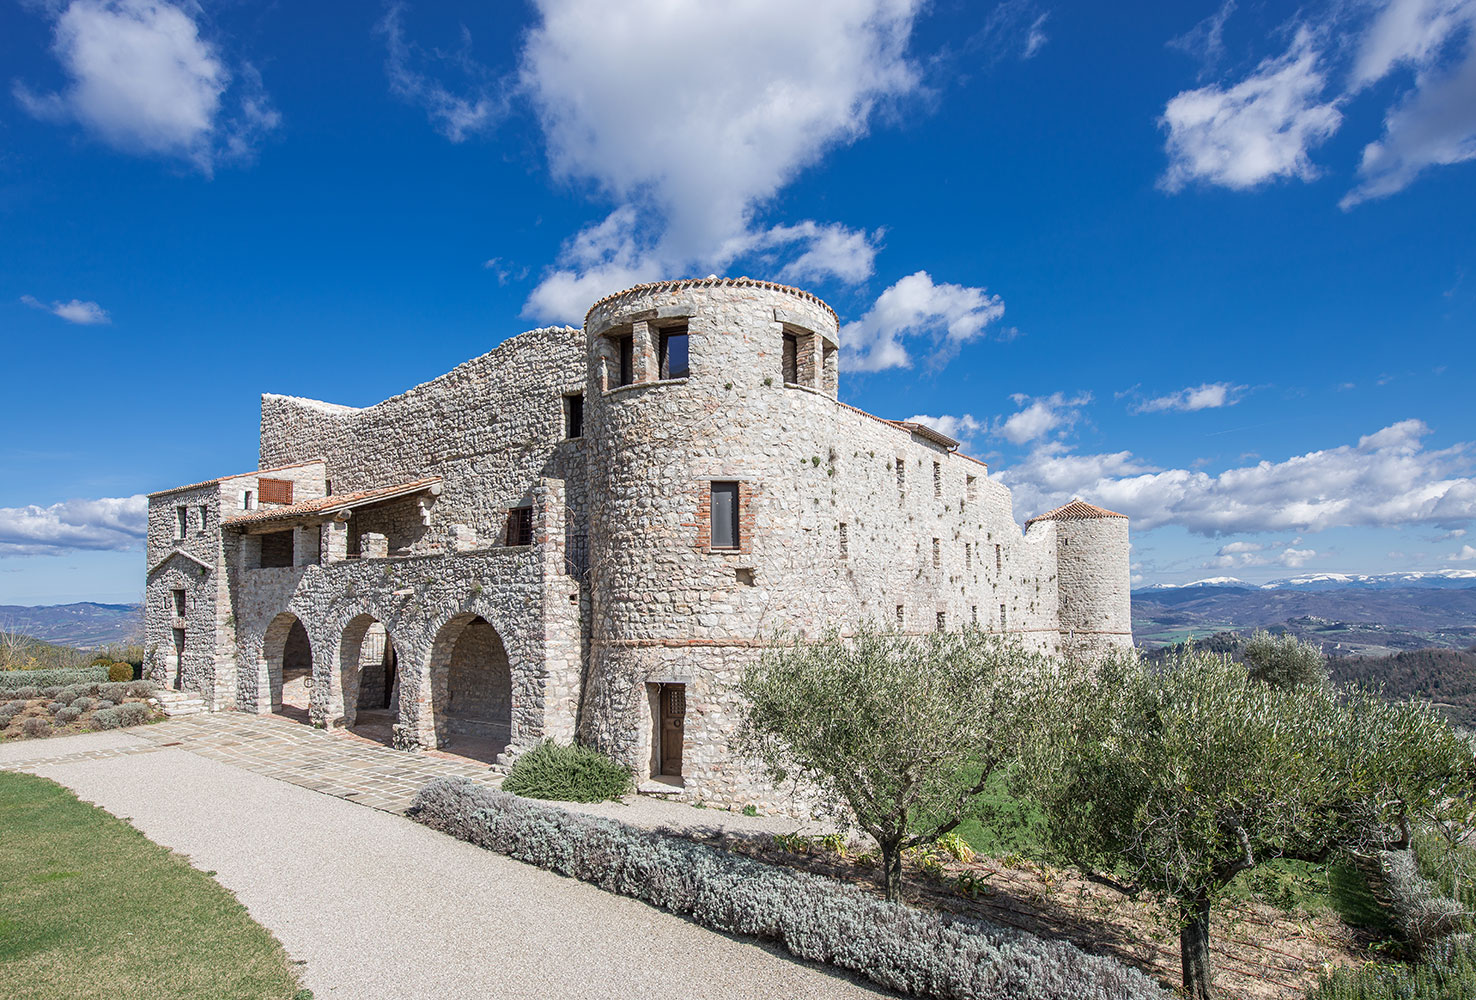 Castello Di Procopio Outdoors 21